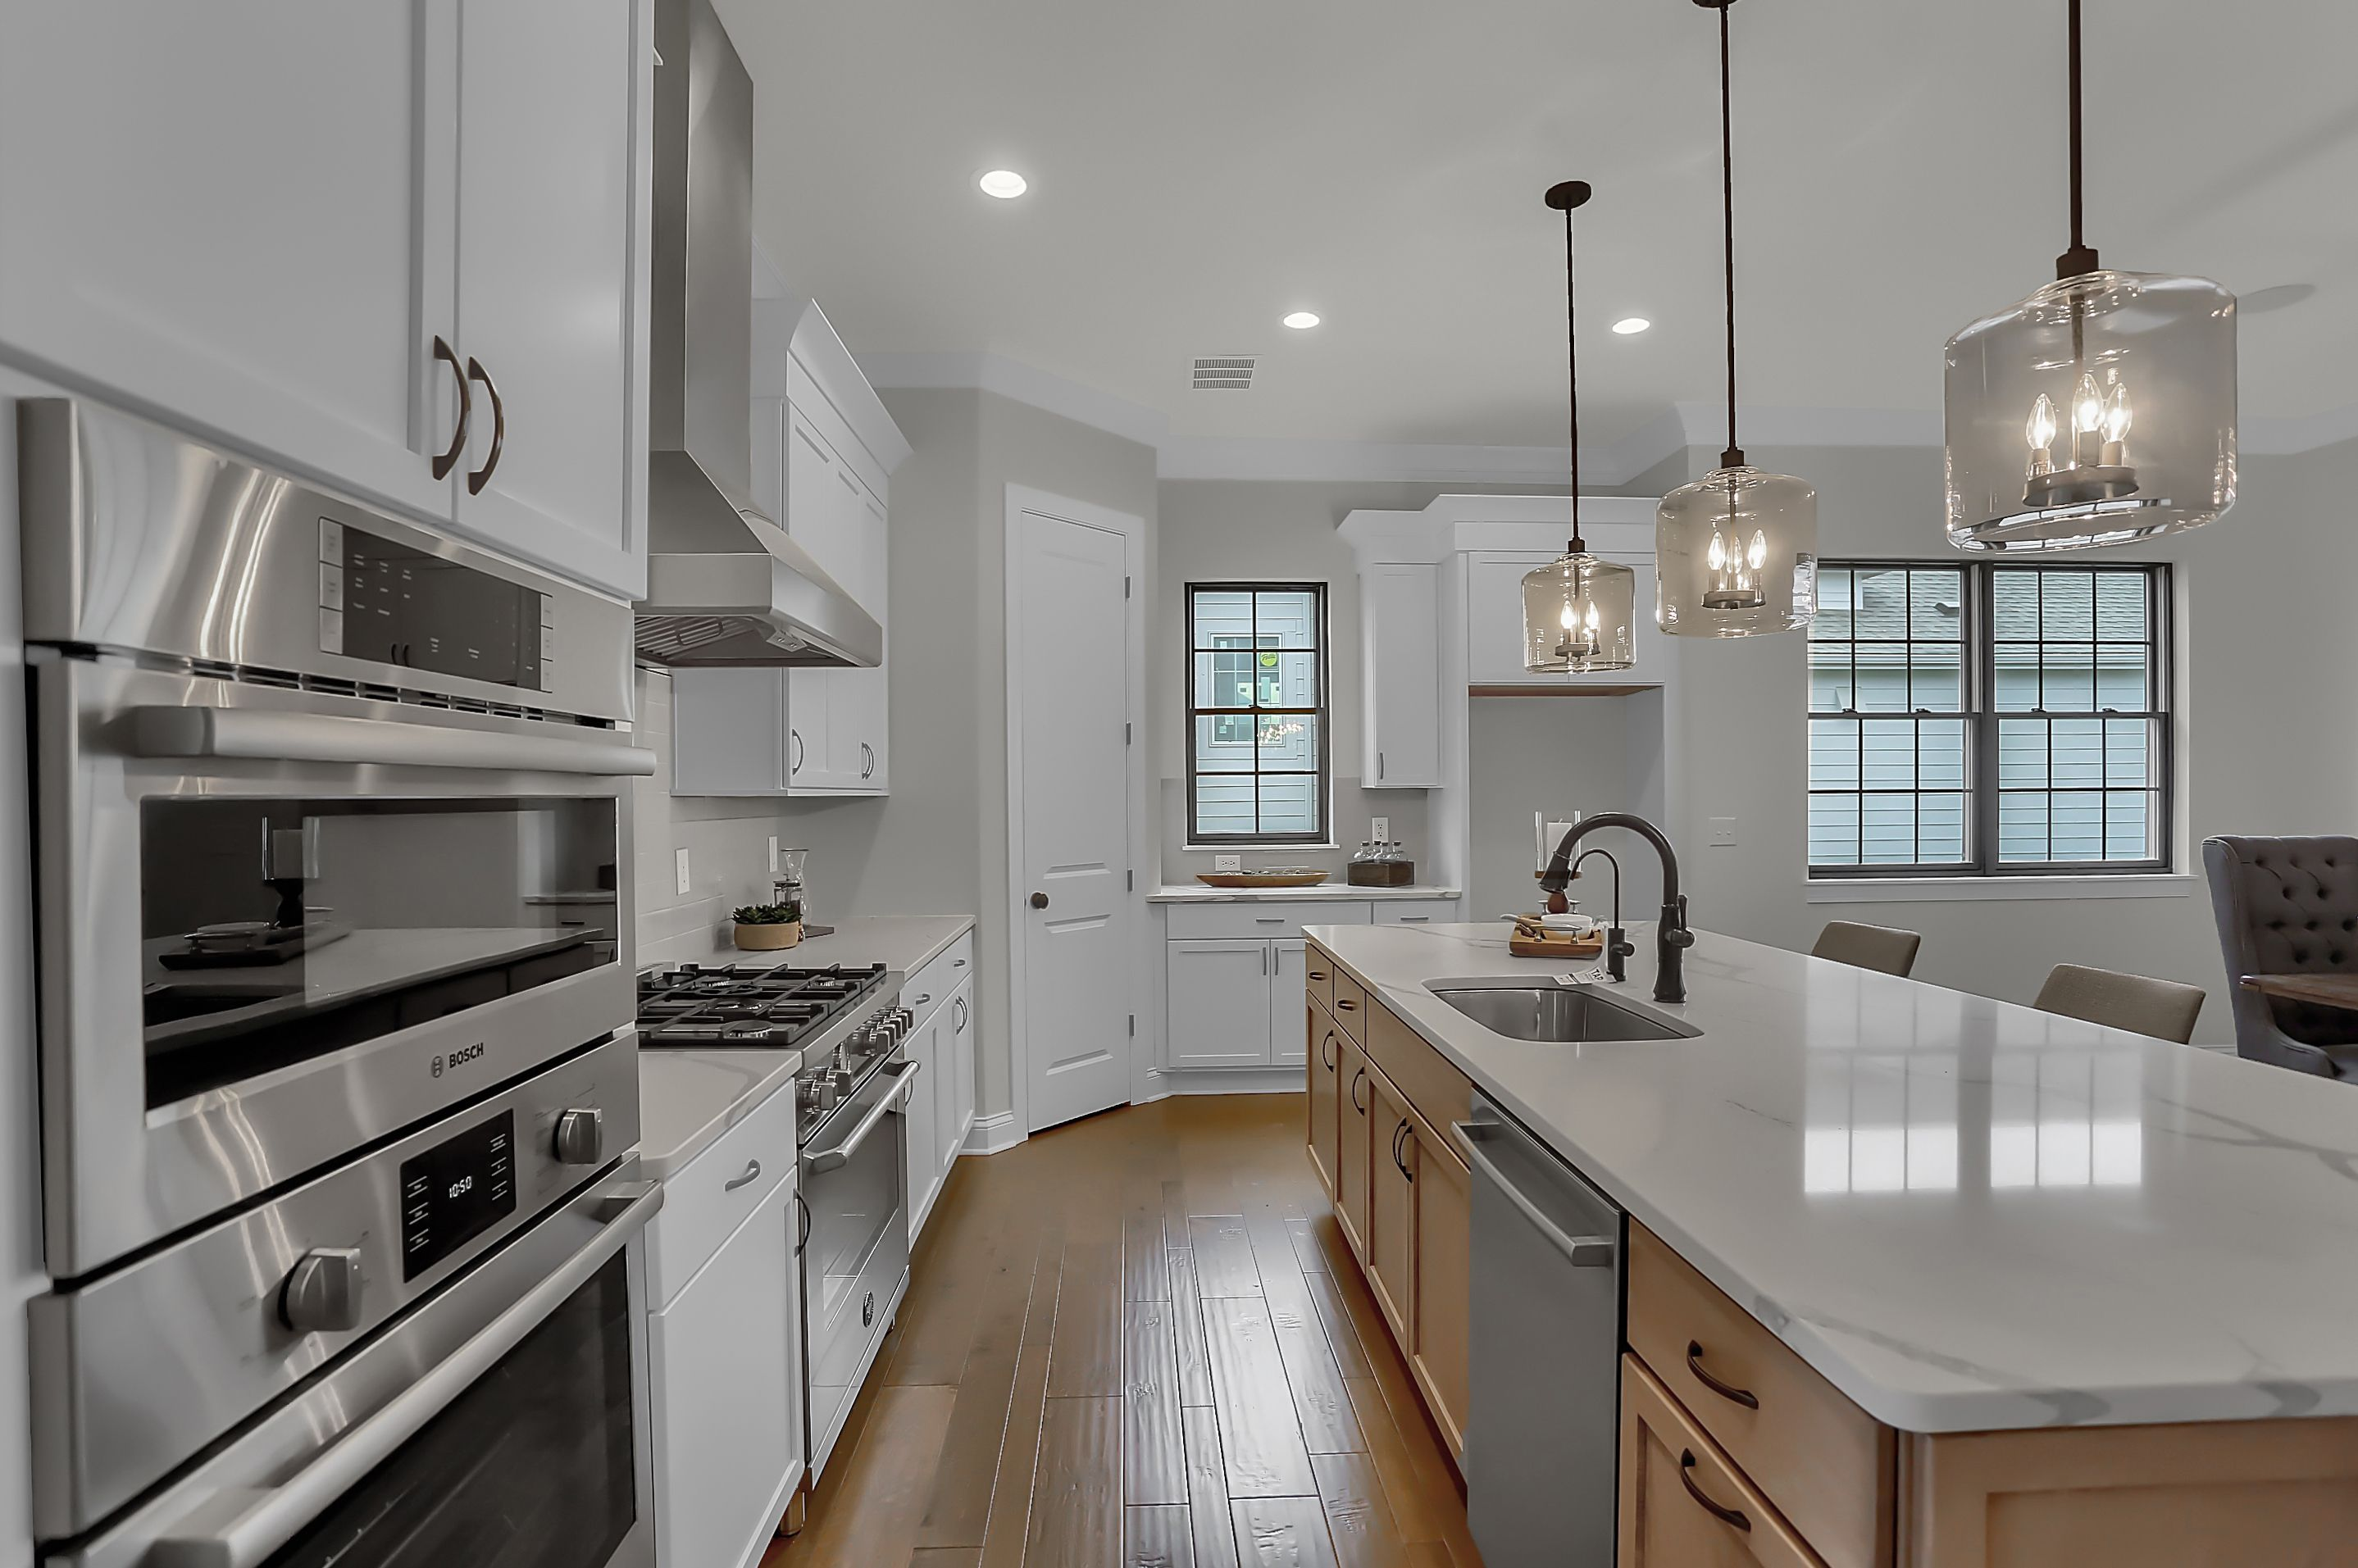 Kitchen featured in the Lockerbie 303 By Estridge Homes in Indianapolis, IN